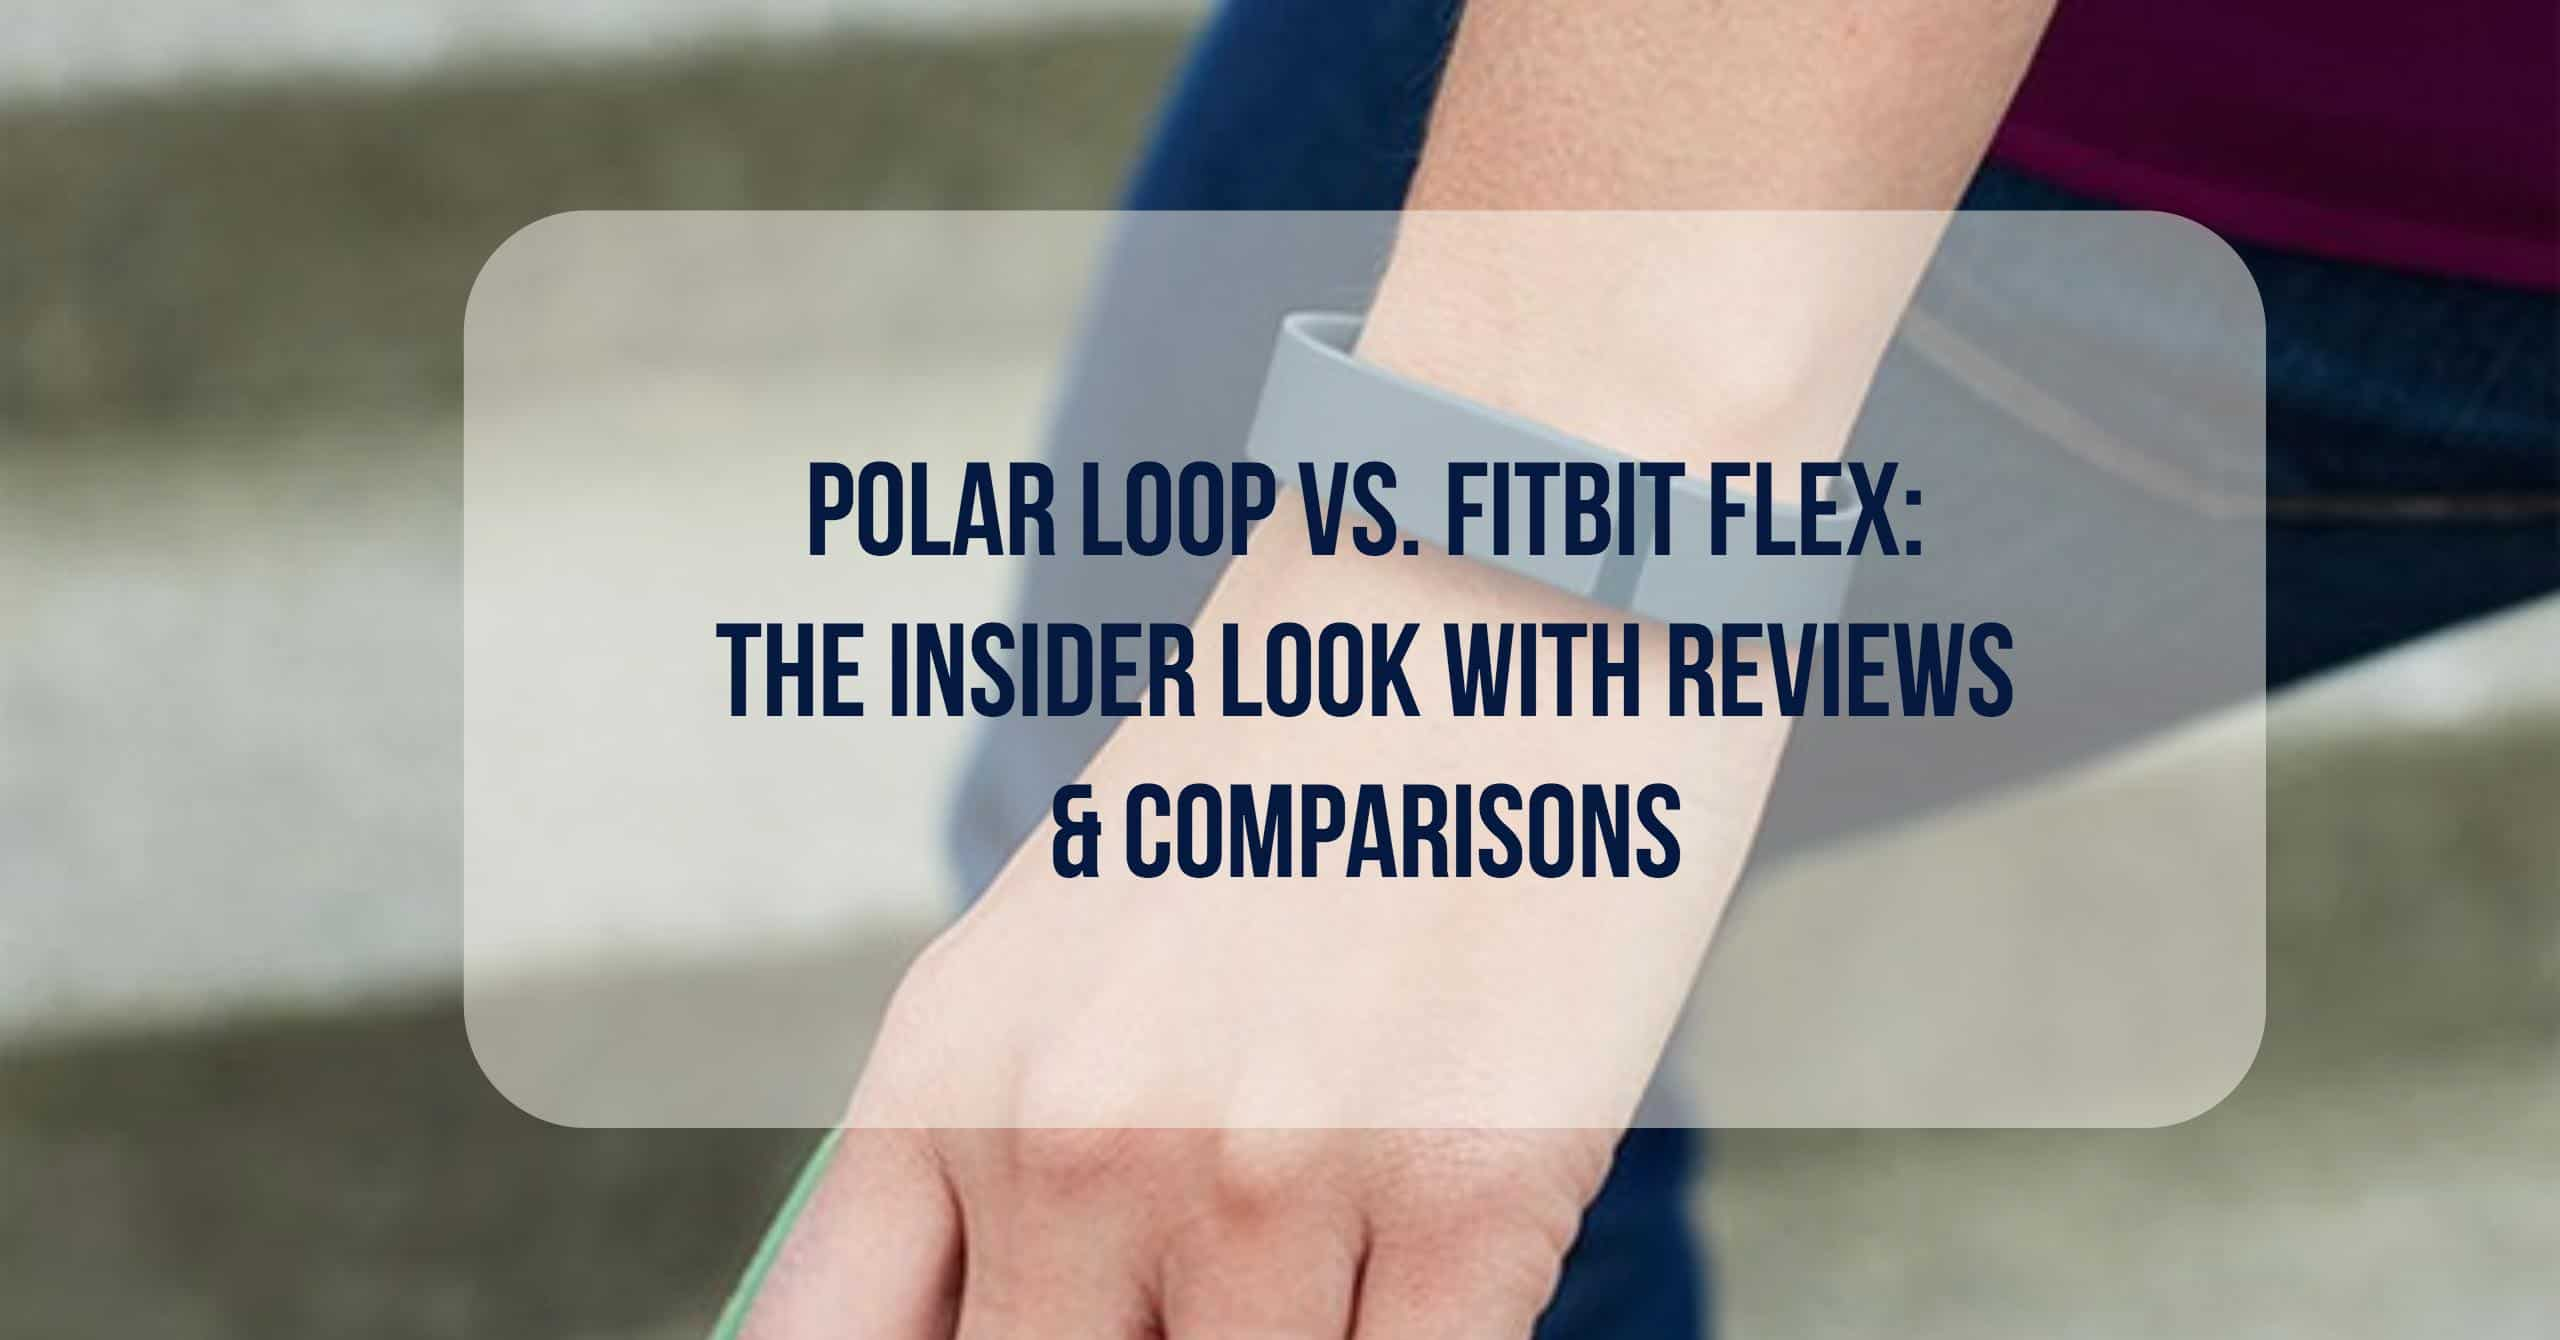 Polar Loop Vs. Fitbit Flex: The Insider Look with Reviews & Comparisons. Both are top-rated, and also the creme' de la creme' of the fitness world. They are both from two fitness tracking companies that have recently been in a head-to-head battle of supremacy and technology dominance.